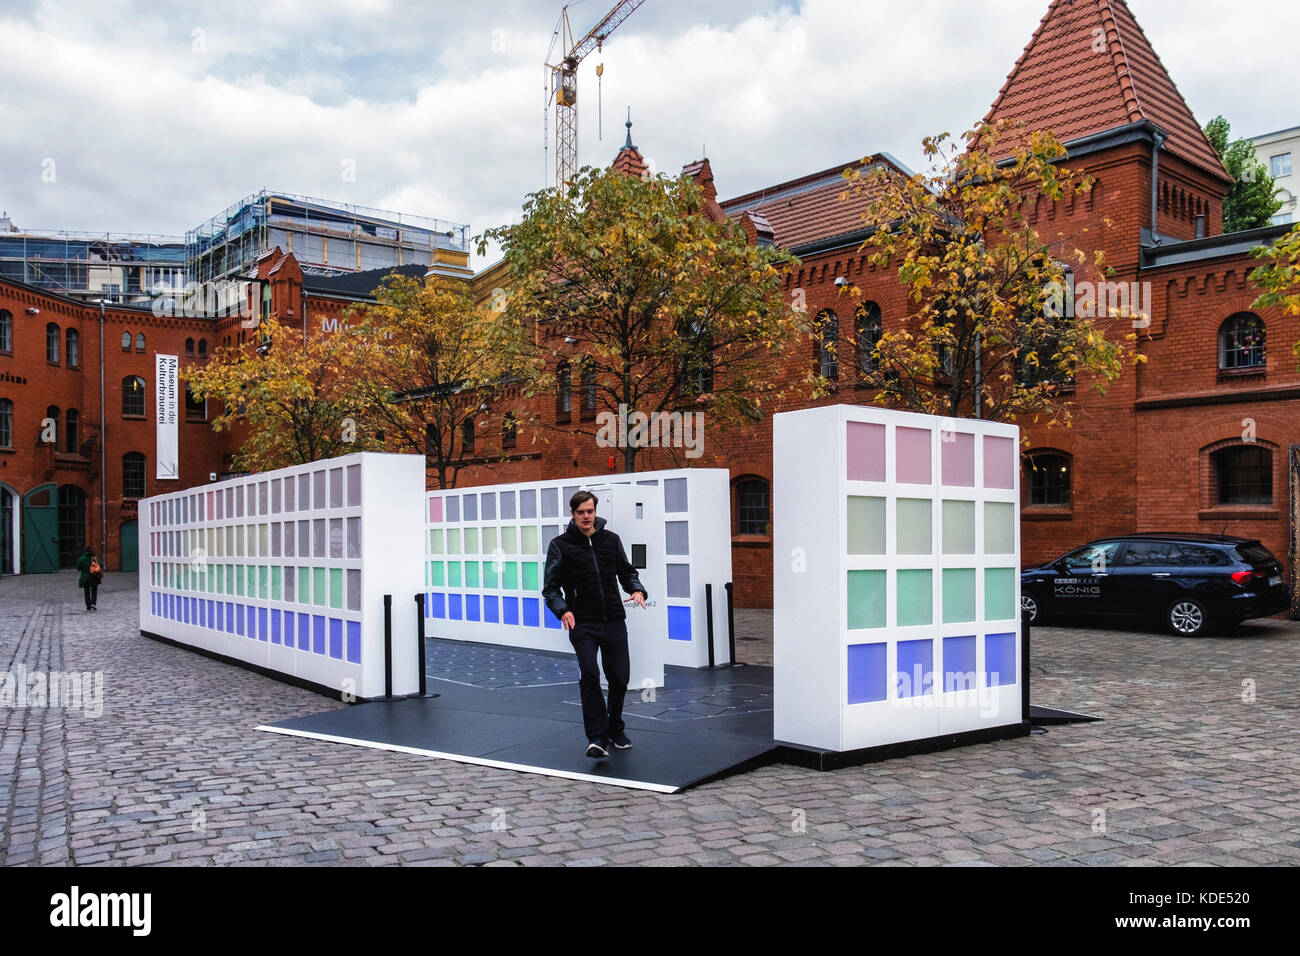 berlin-germany-13th-october-2017-people-enjoy-an-energy-harvesting-KDE520.jpg